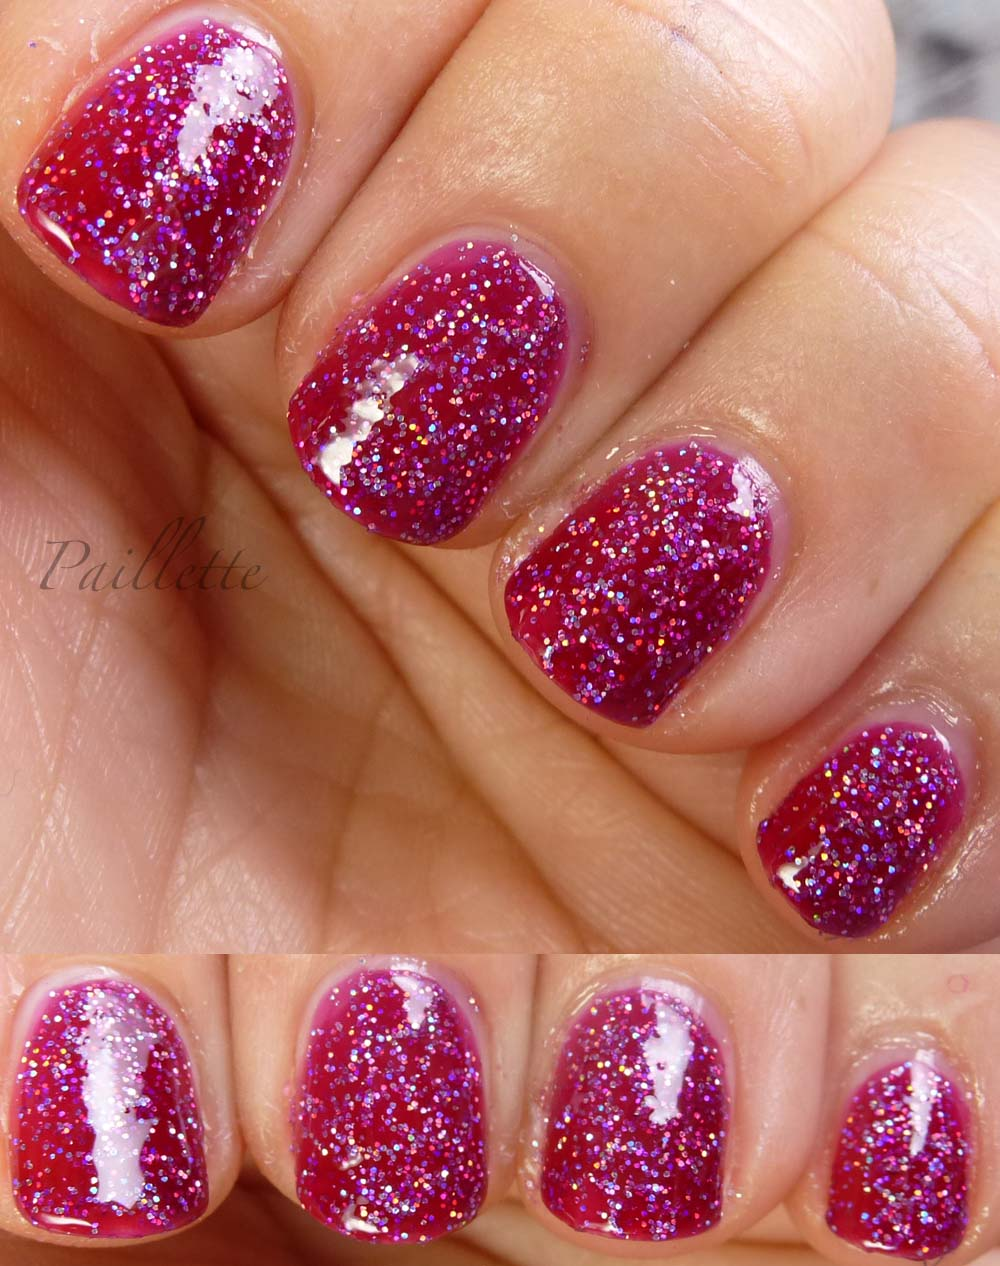 Paillette: a little nail polish journal: Holo + Jelly = Happiness